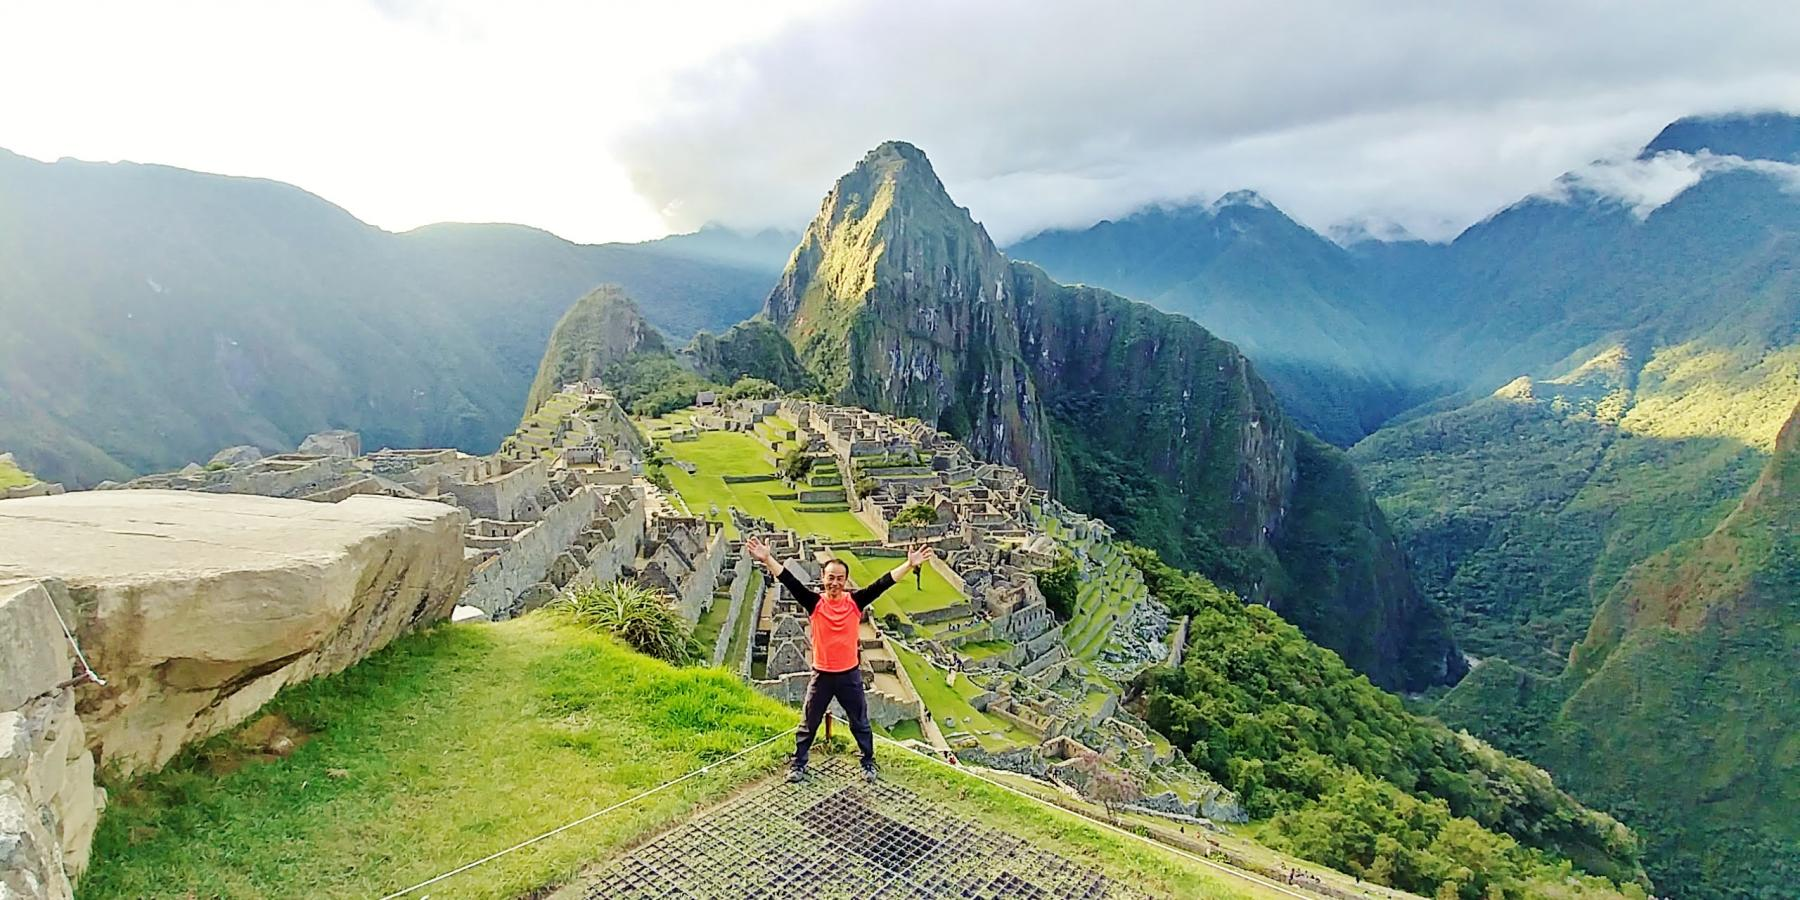 21Days South America: Peru, Bolivia, Argentina, Brazil - Sep 2019 starting at South America